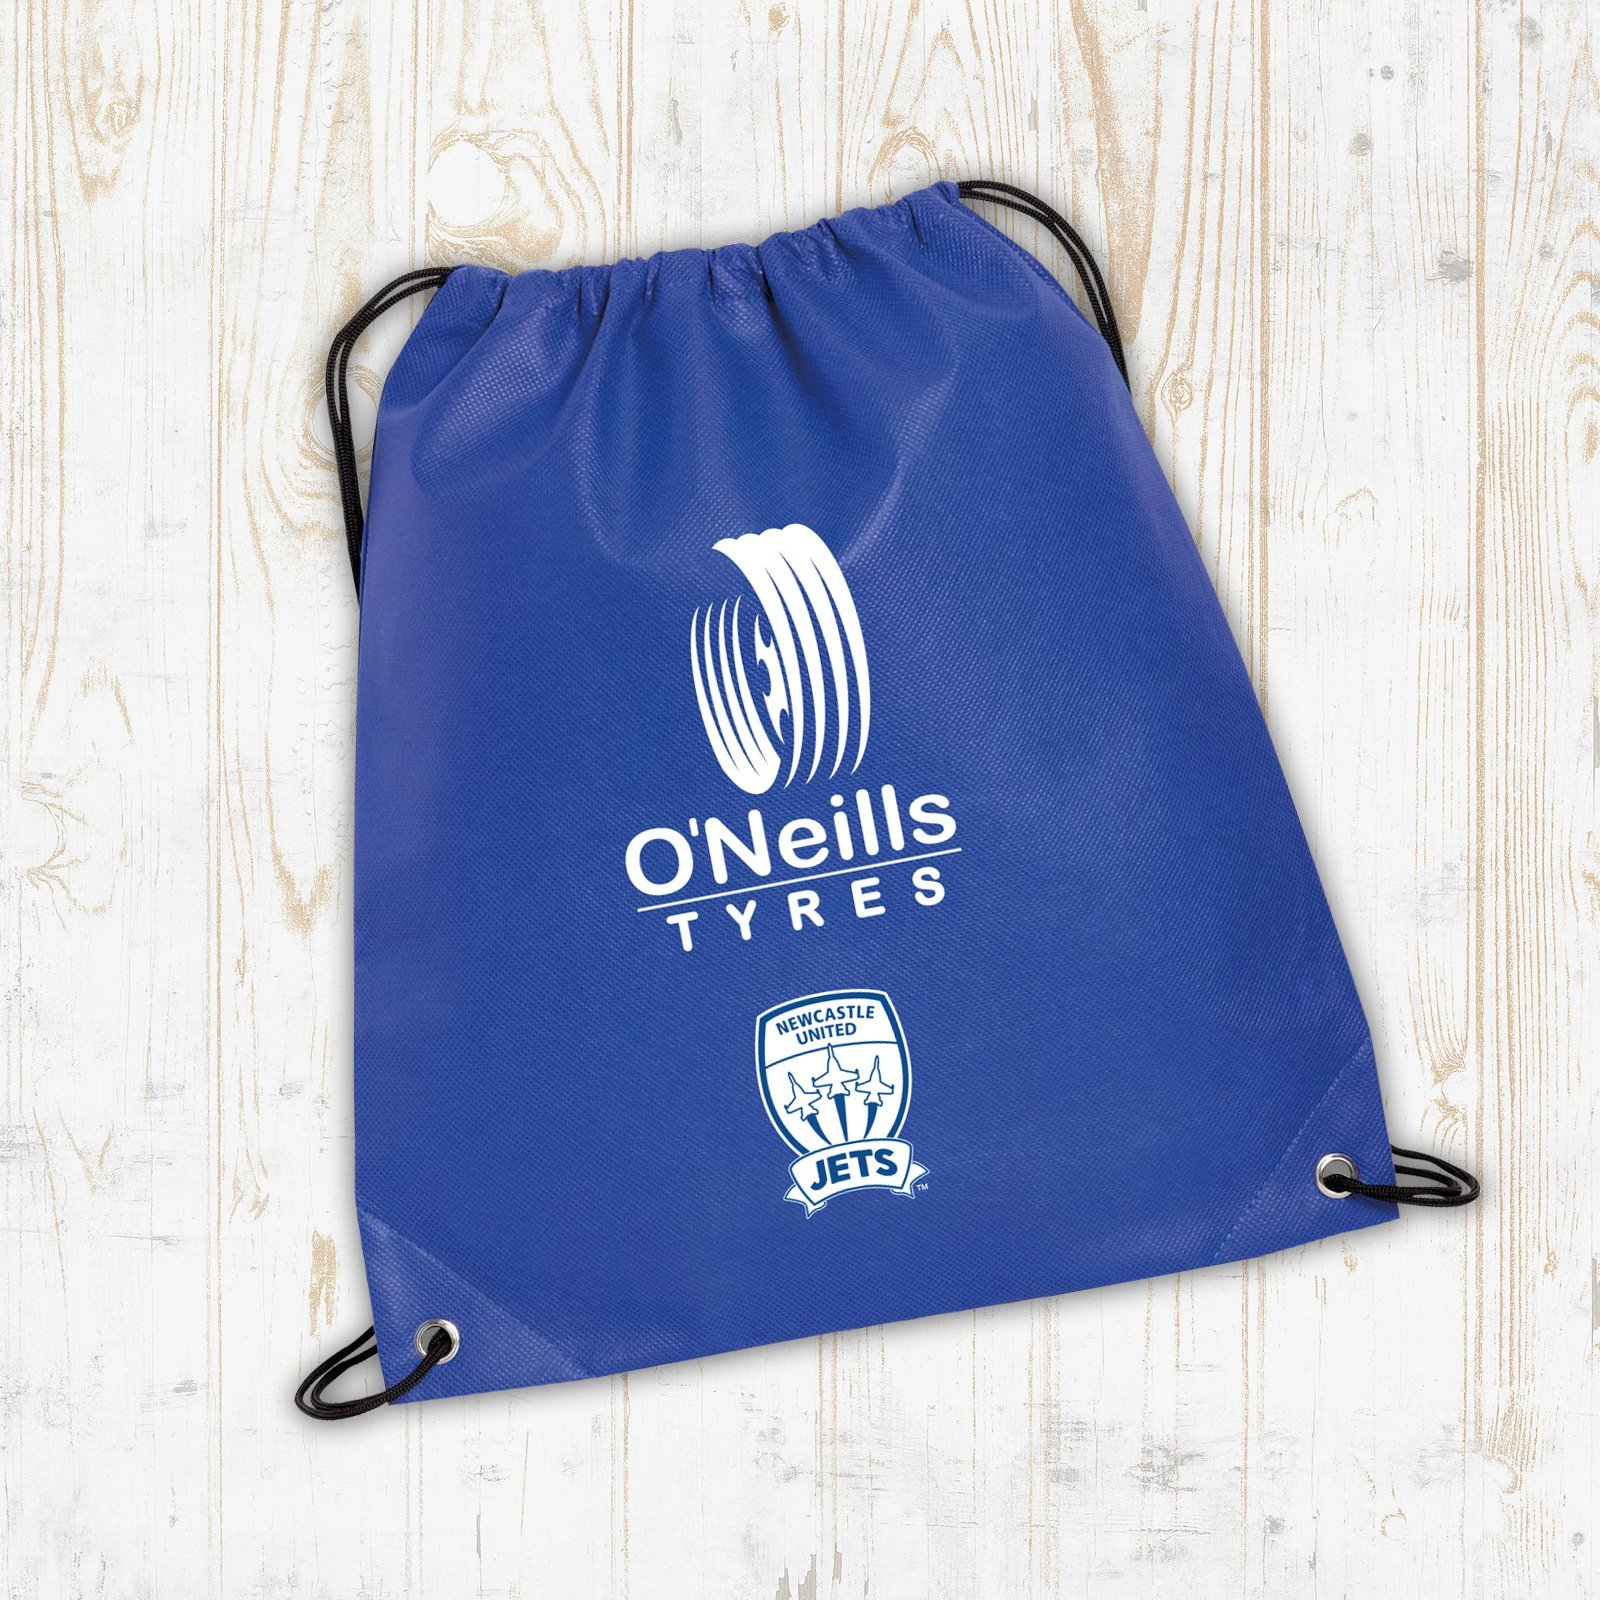 O'Neill's Tyres Event Backpack